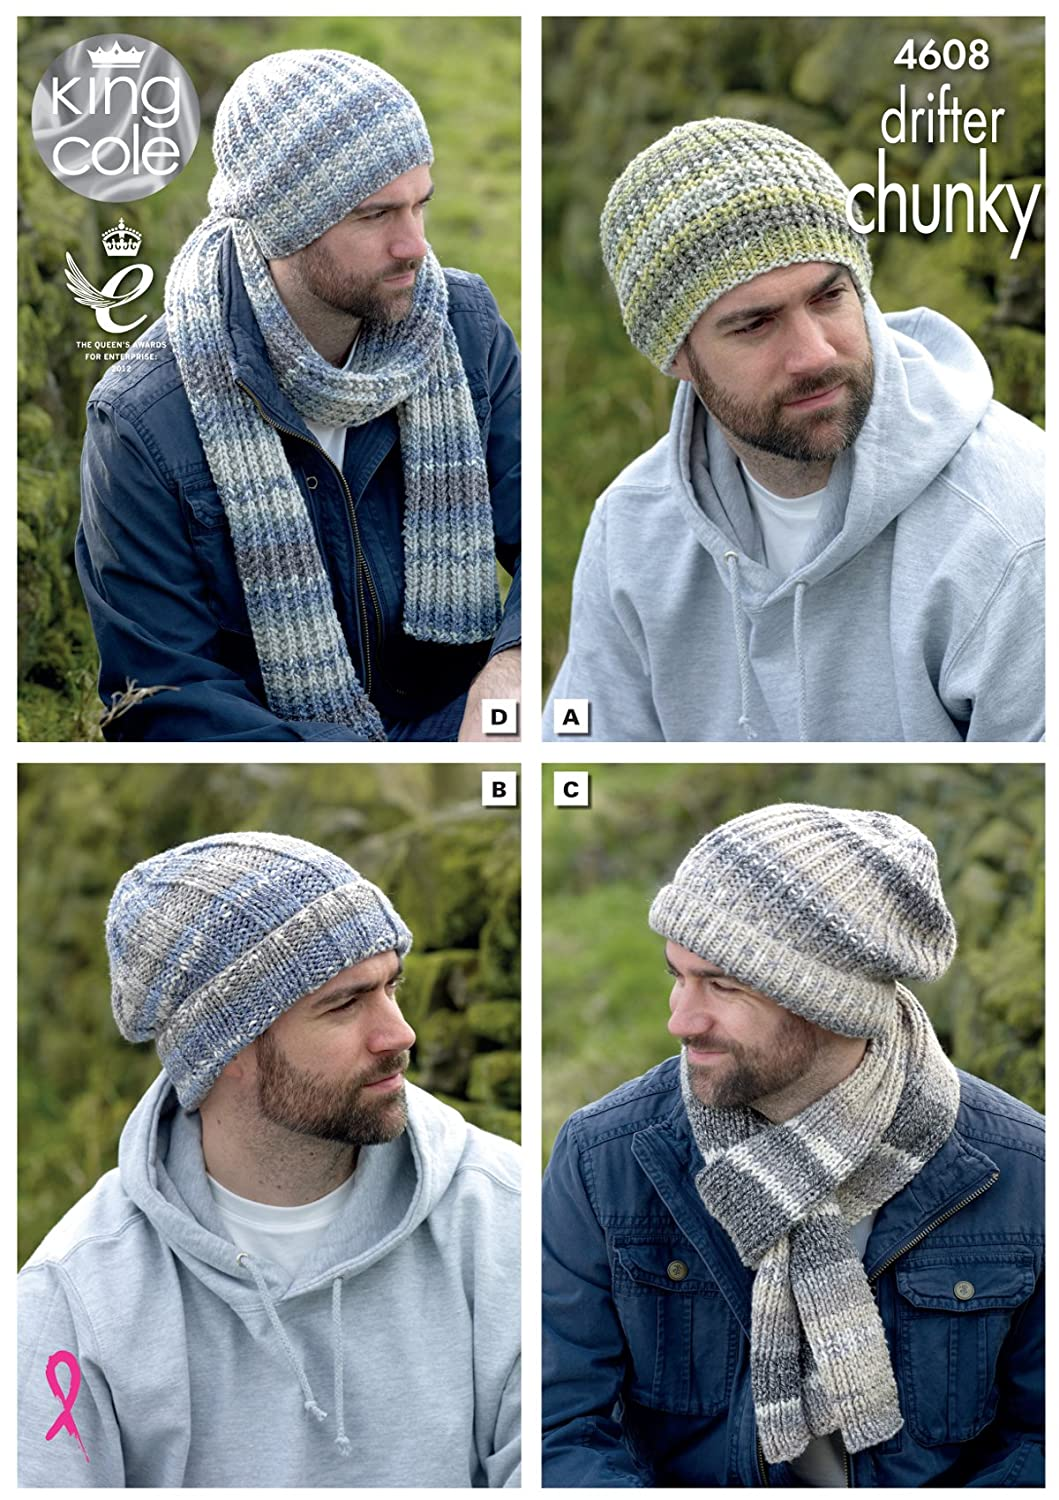 Amazon.com  King Cole Mens Chunky Knitting Pattern - Slouchy or Ribbed Hats    Scarf Winter Accessories (4608) by King Cole  Home   Kitchen f94b3b42ff5